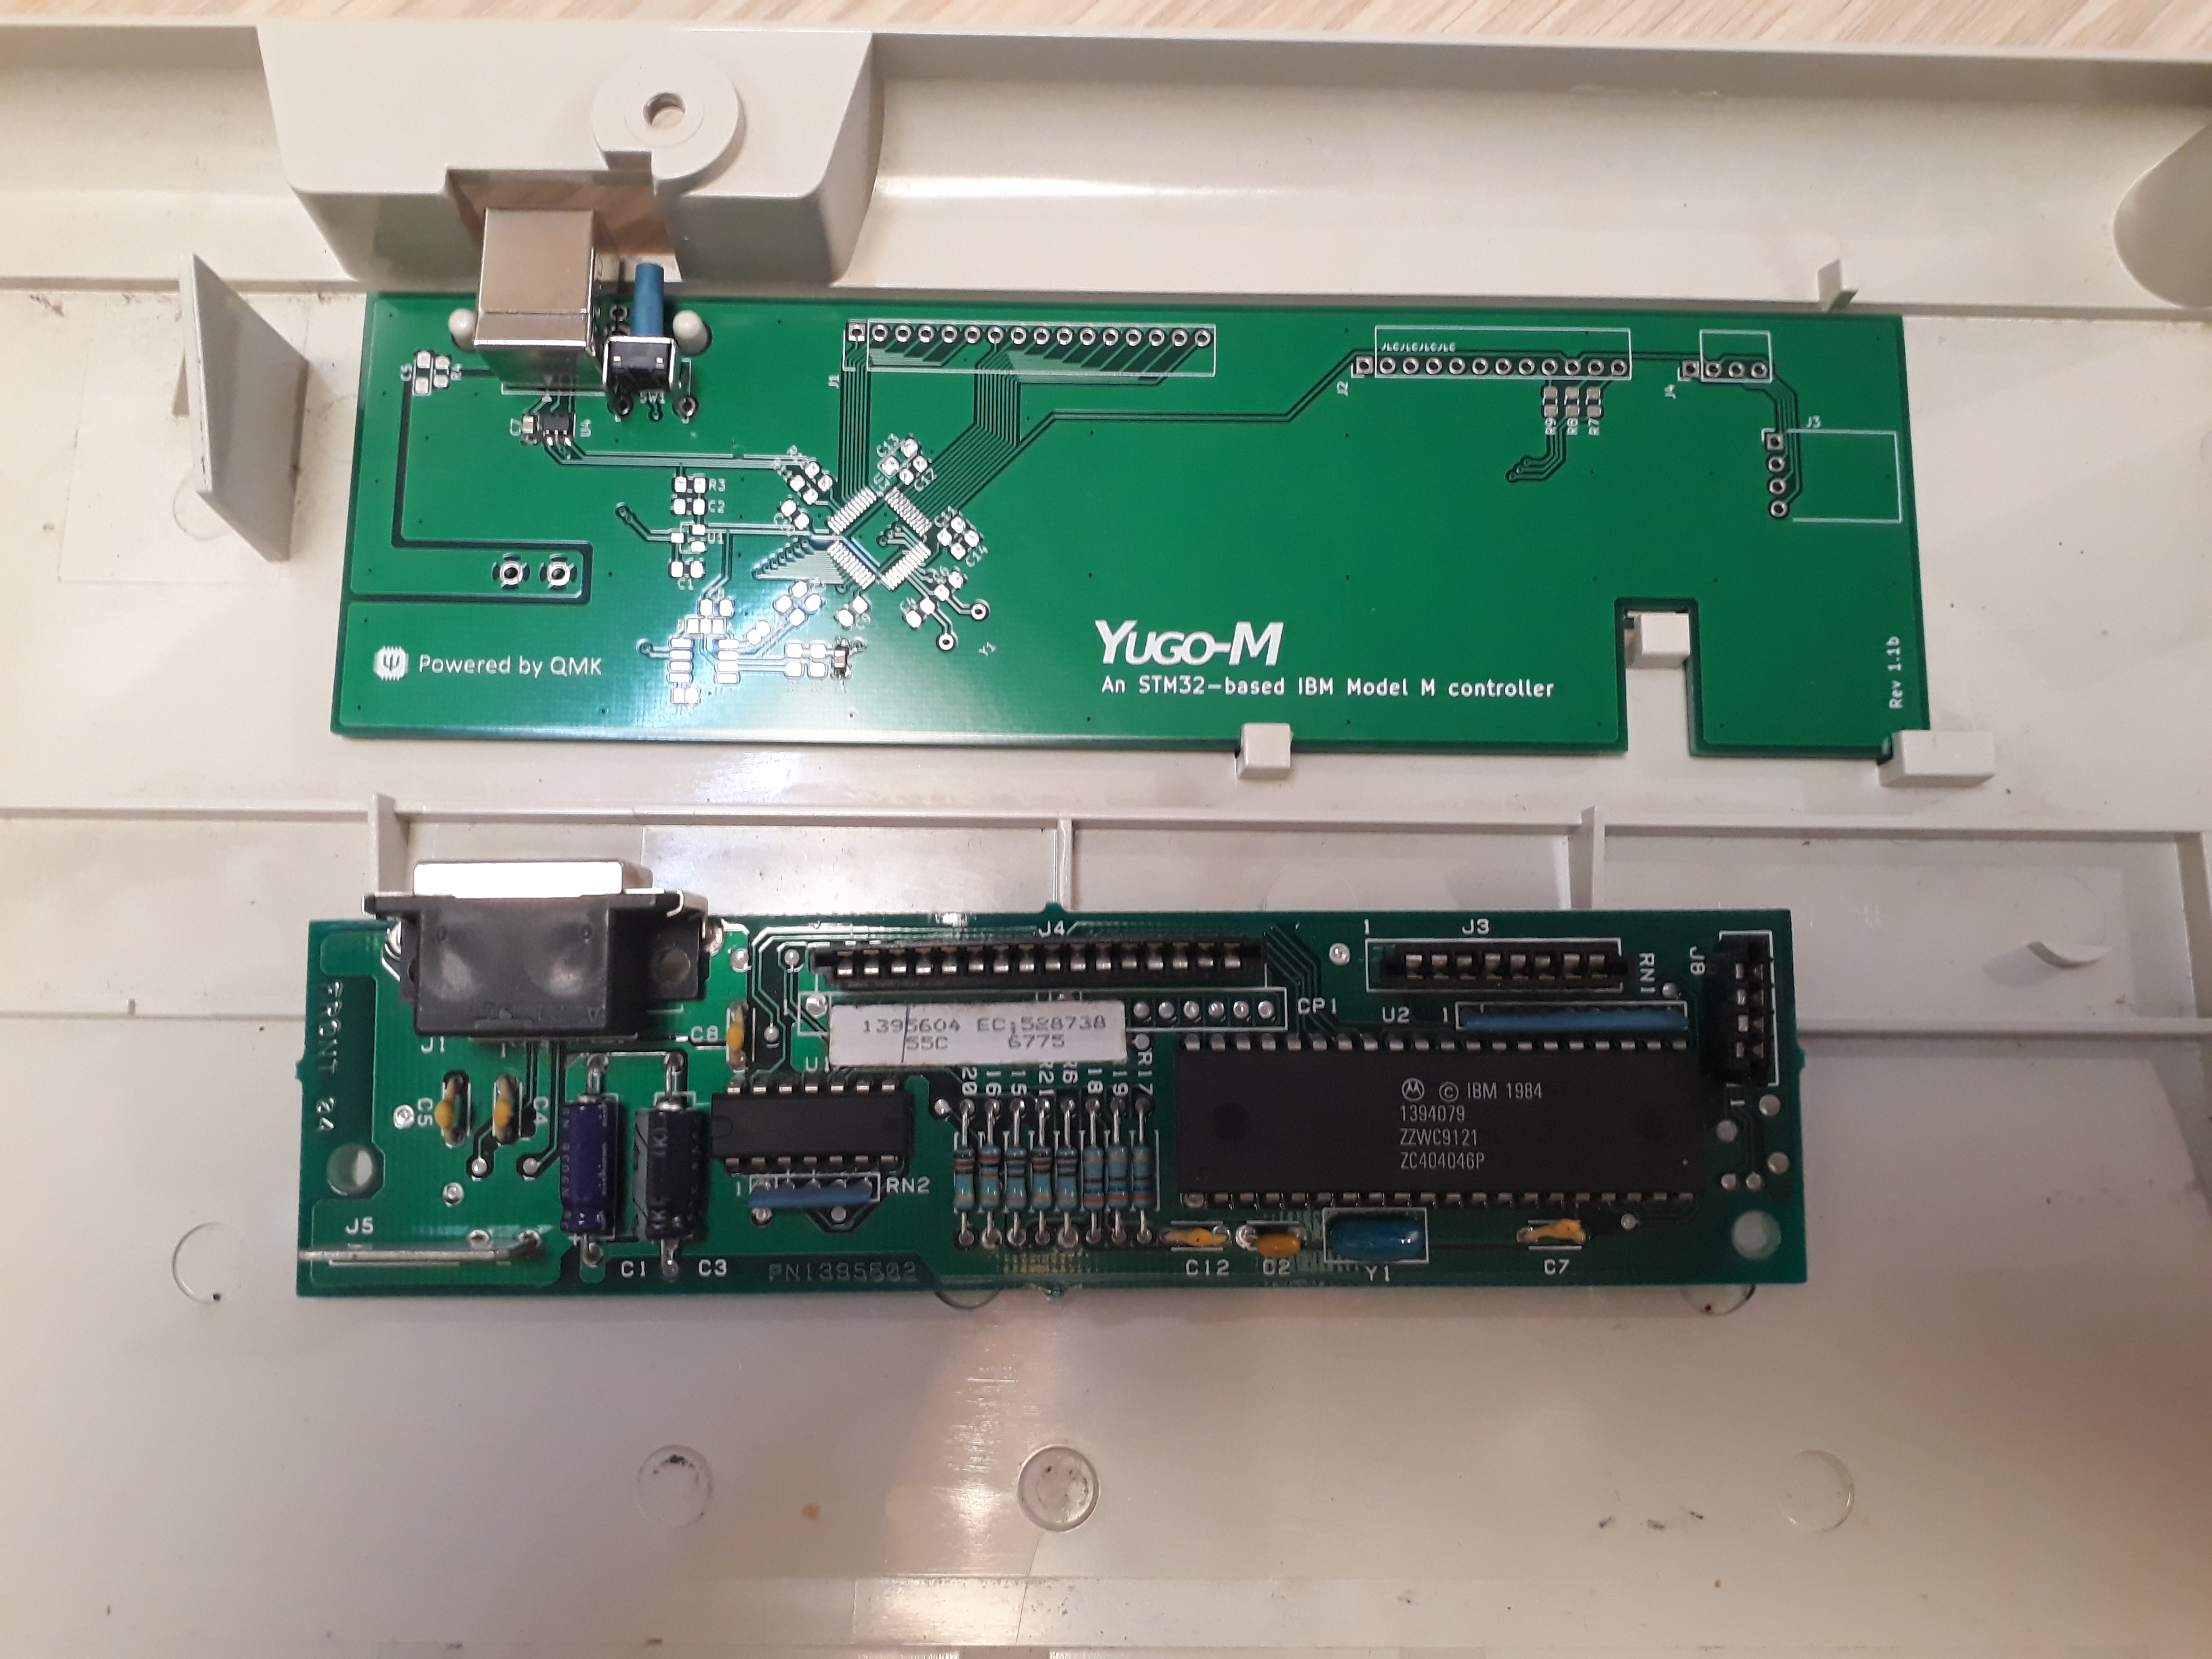 Compared to the original PCB which is a smaller variant.